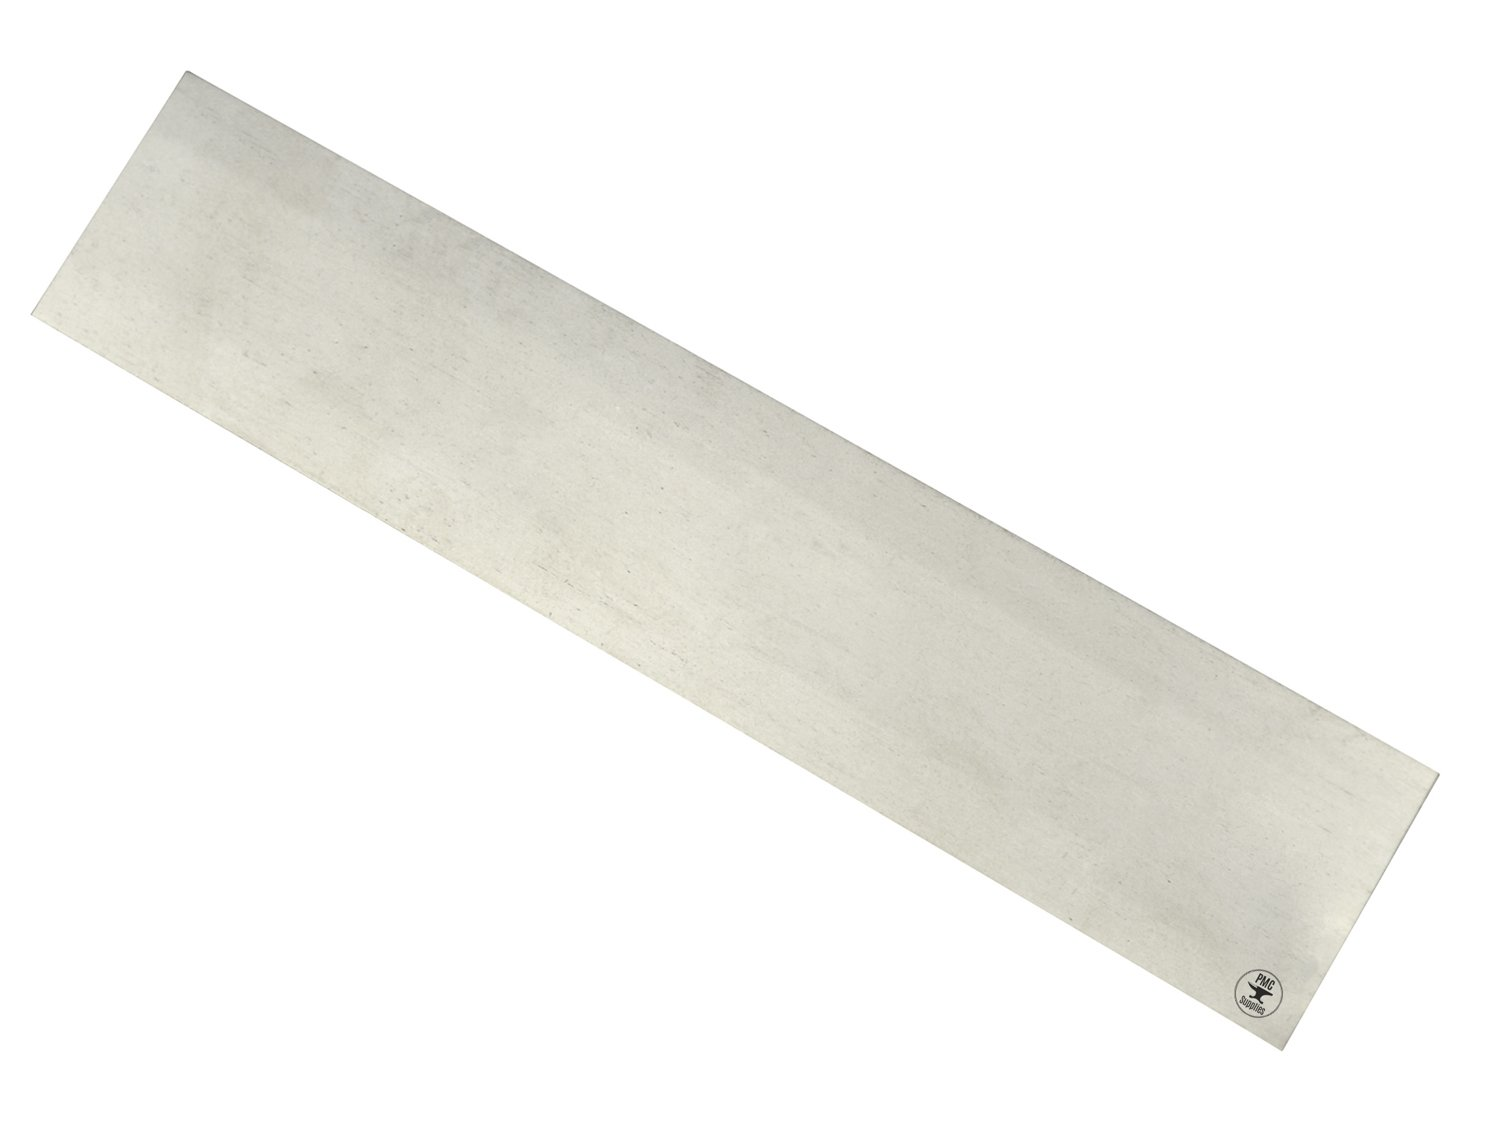 Soft Silver Soldering Sheet Plate Size .010'' x 1'' x 5'' DWT Tool for Jewelry Making and Repair